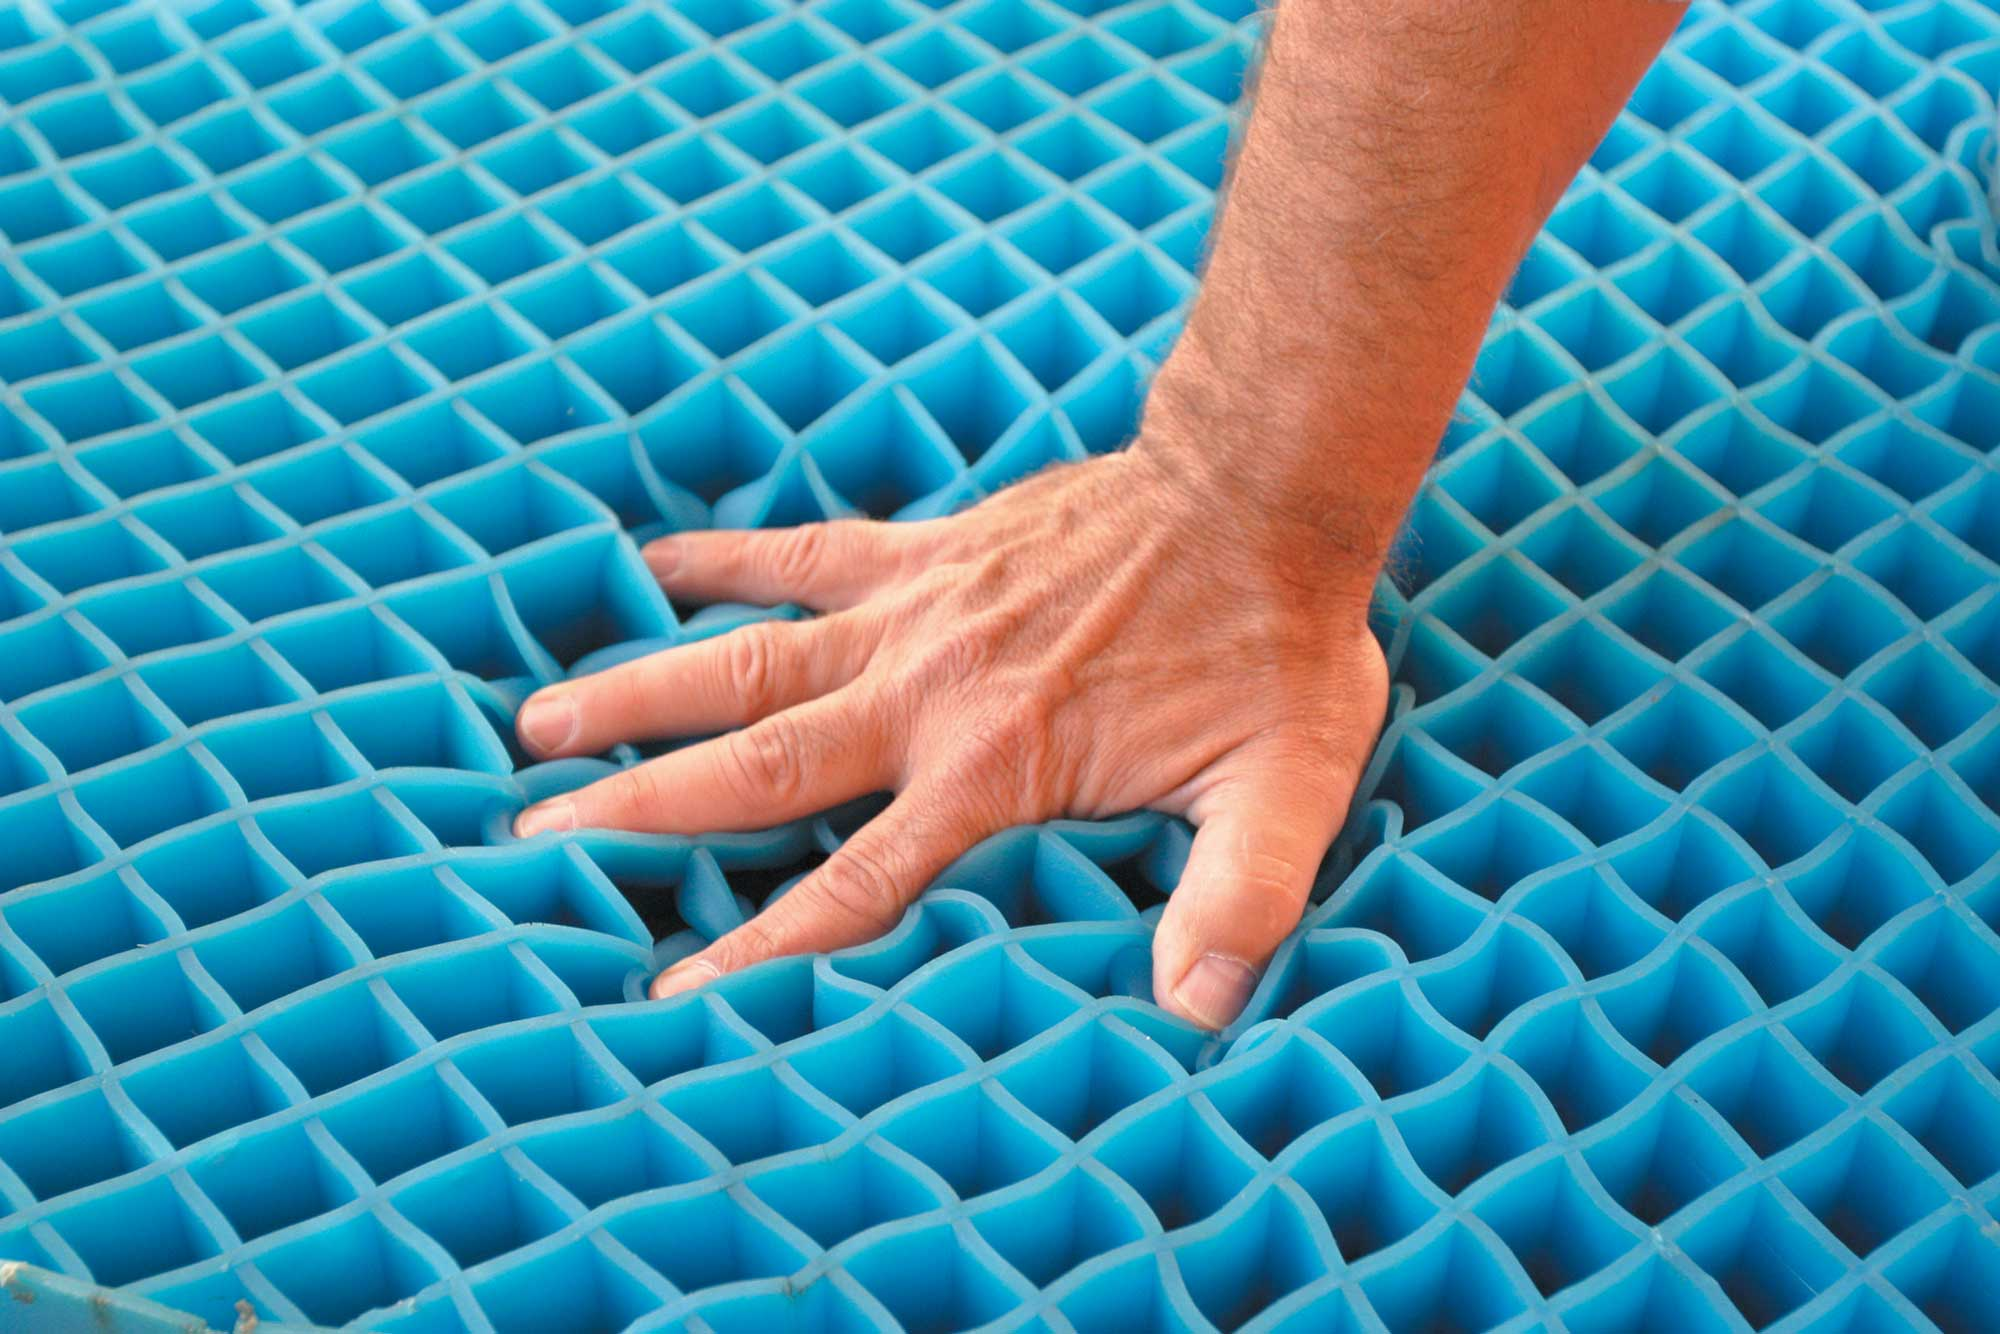 Gel Mattress Reviews and Buying Guide by www.snoremagazine.com